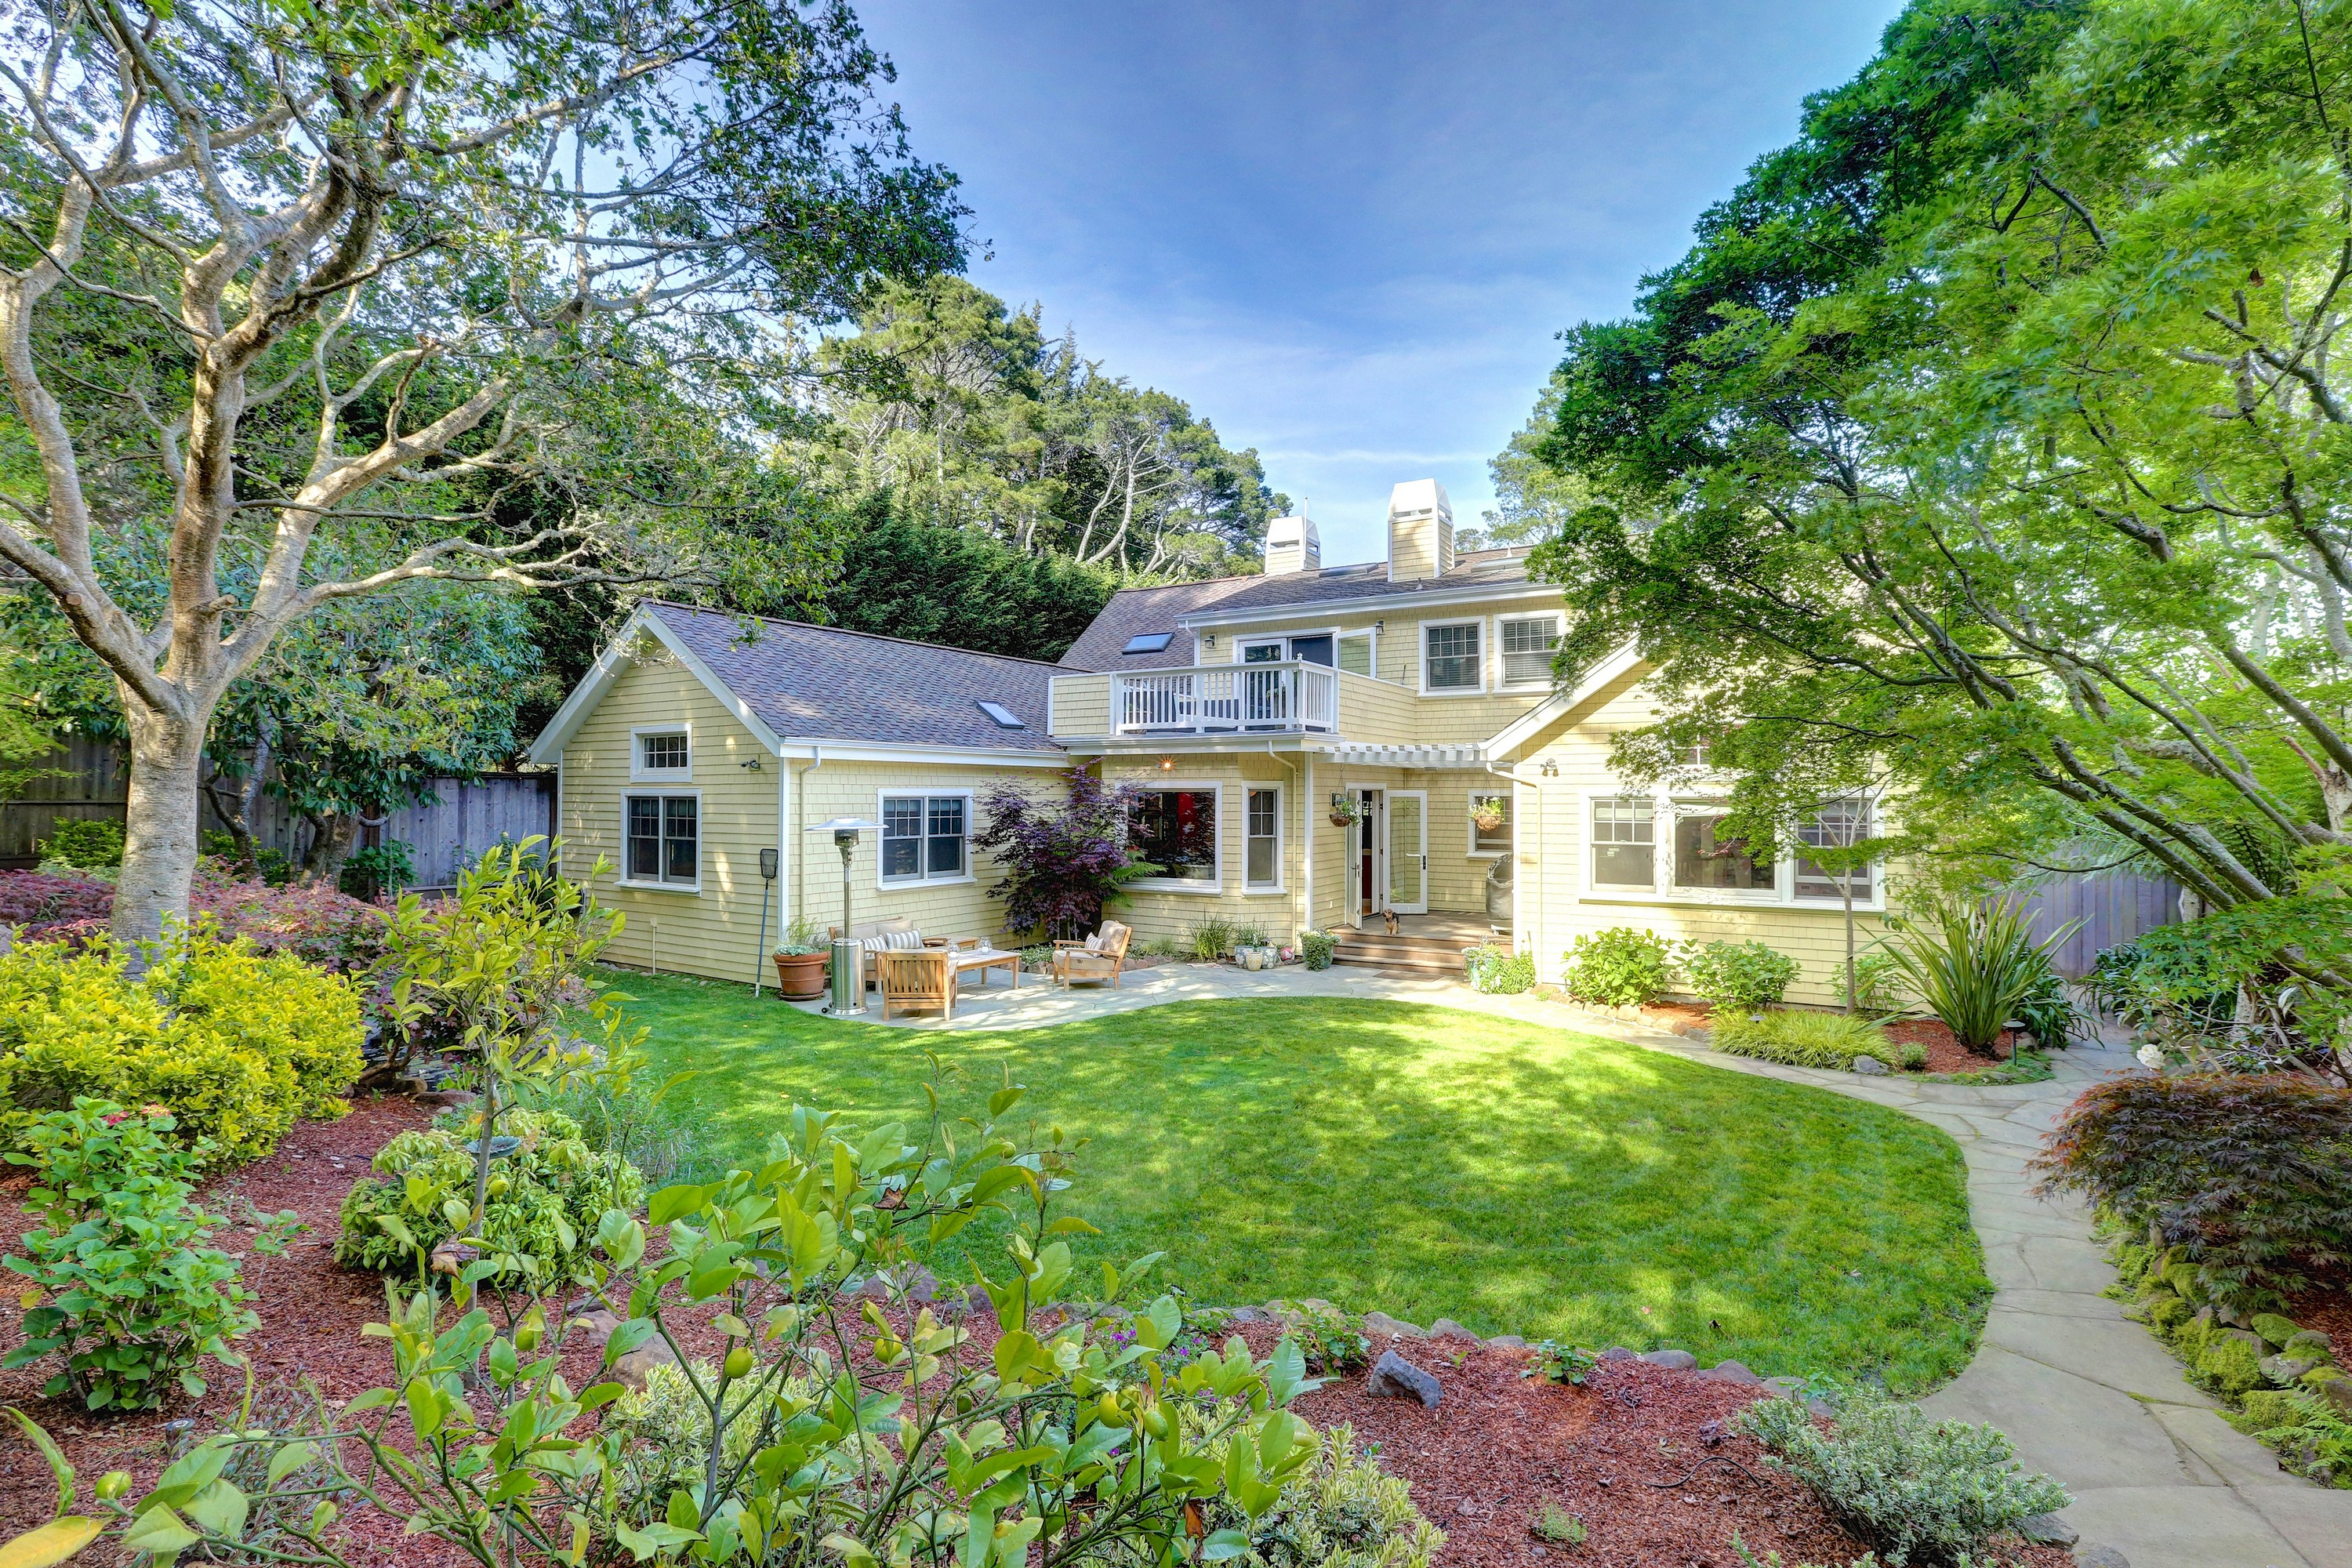 Single Family Home for Sale at Mill Valley Picturesque and Charming Mill Valley, California 94941 United States